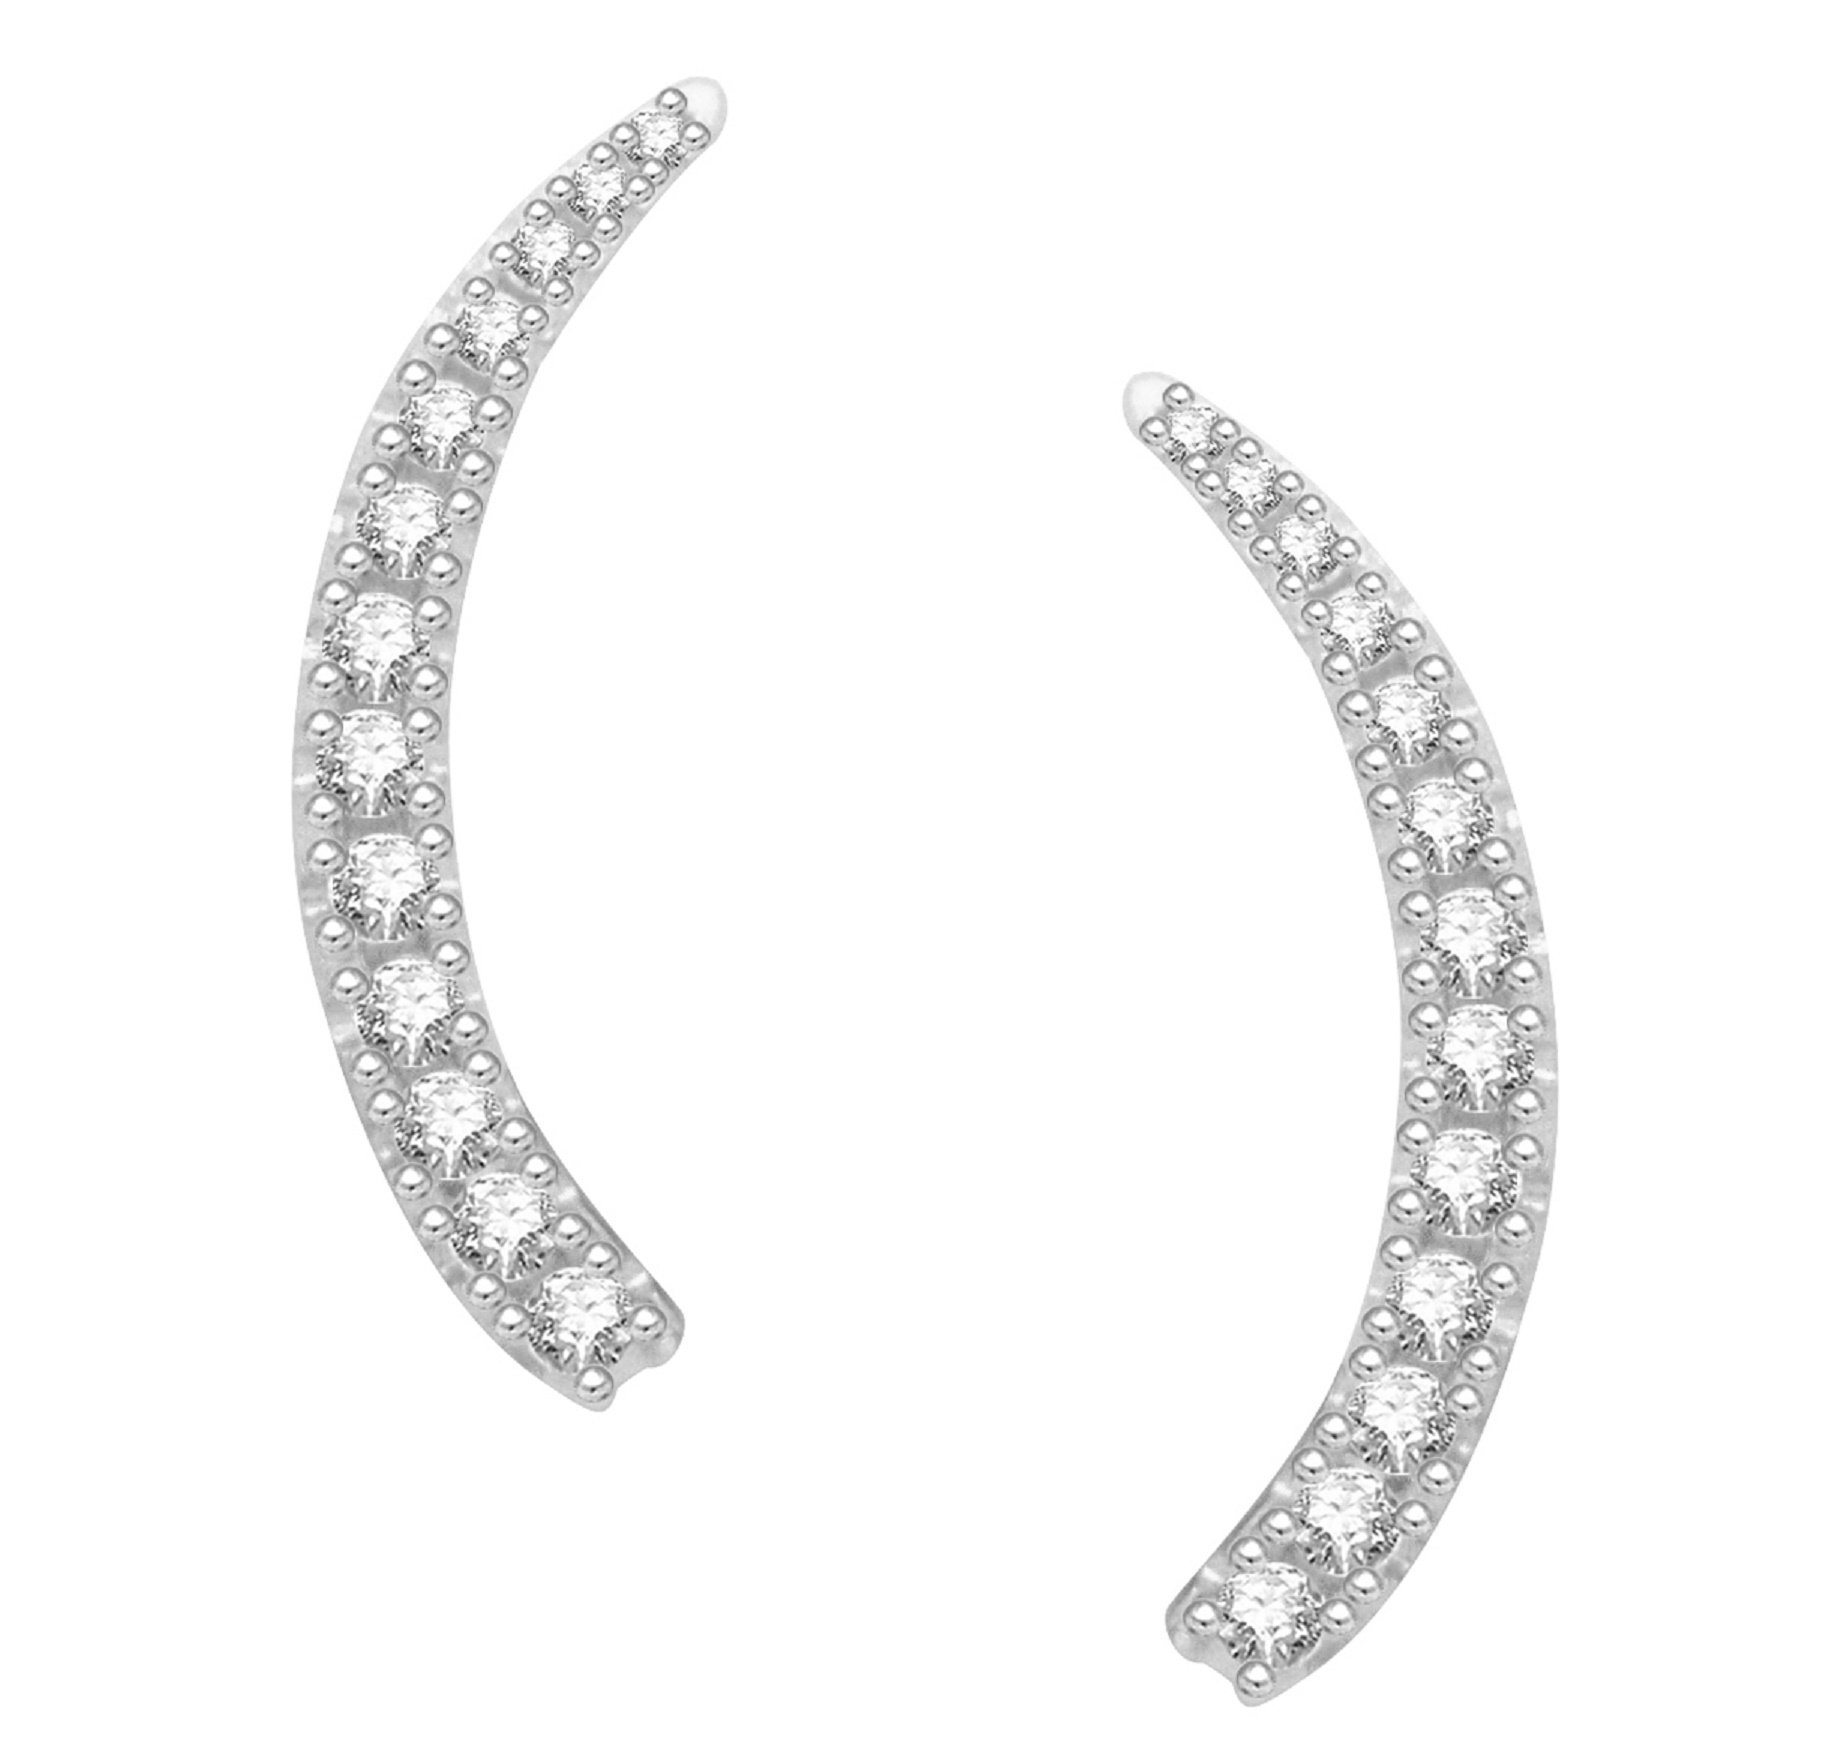 Sterling Silver White Cubic Zirconia Ear Climber Crawler Earrings 25mm